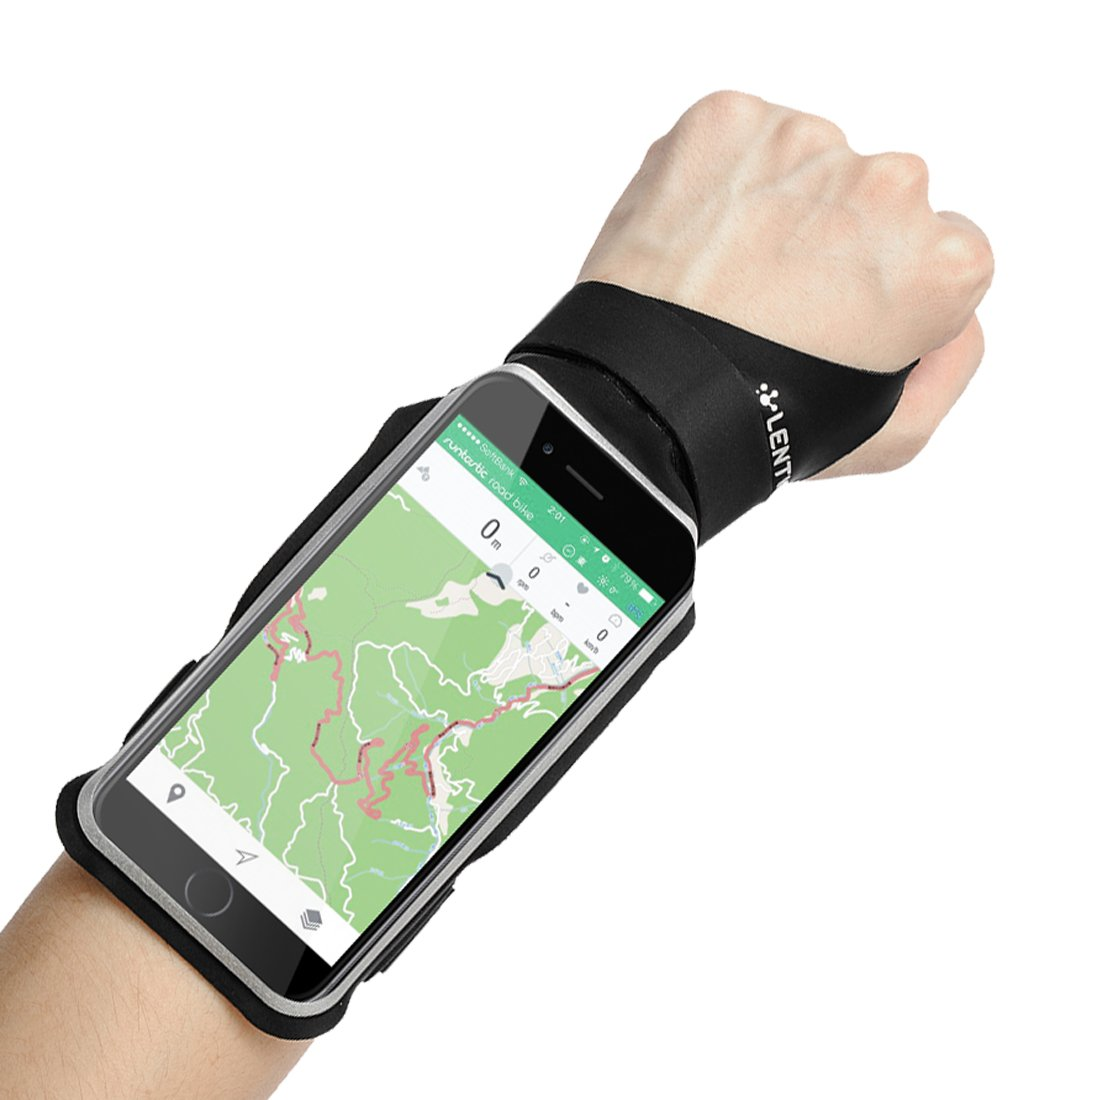 LENTION iPhone XS/Max/XR/X/8P/7P/6s P/6 P, Samsung S9/S8/Plus Touch Screen Forearm Band, Wristband, Running Armband with Key ID Cash Holder for Cycling, Jogging, Sports by LENTION